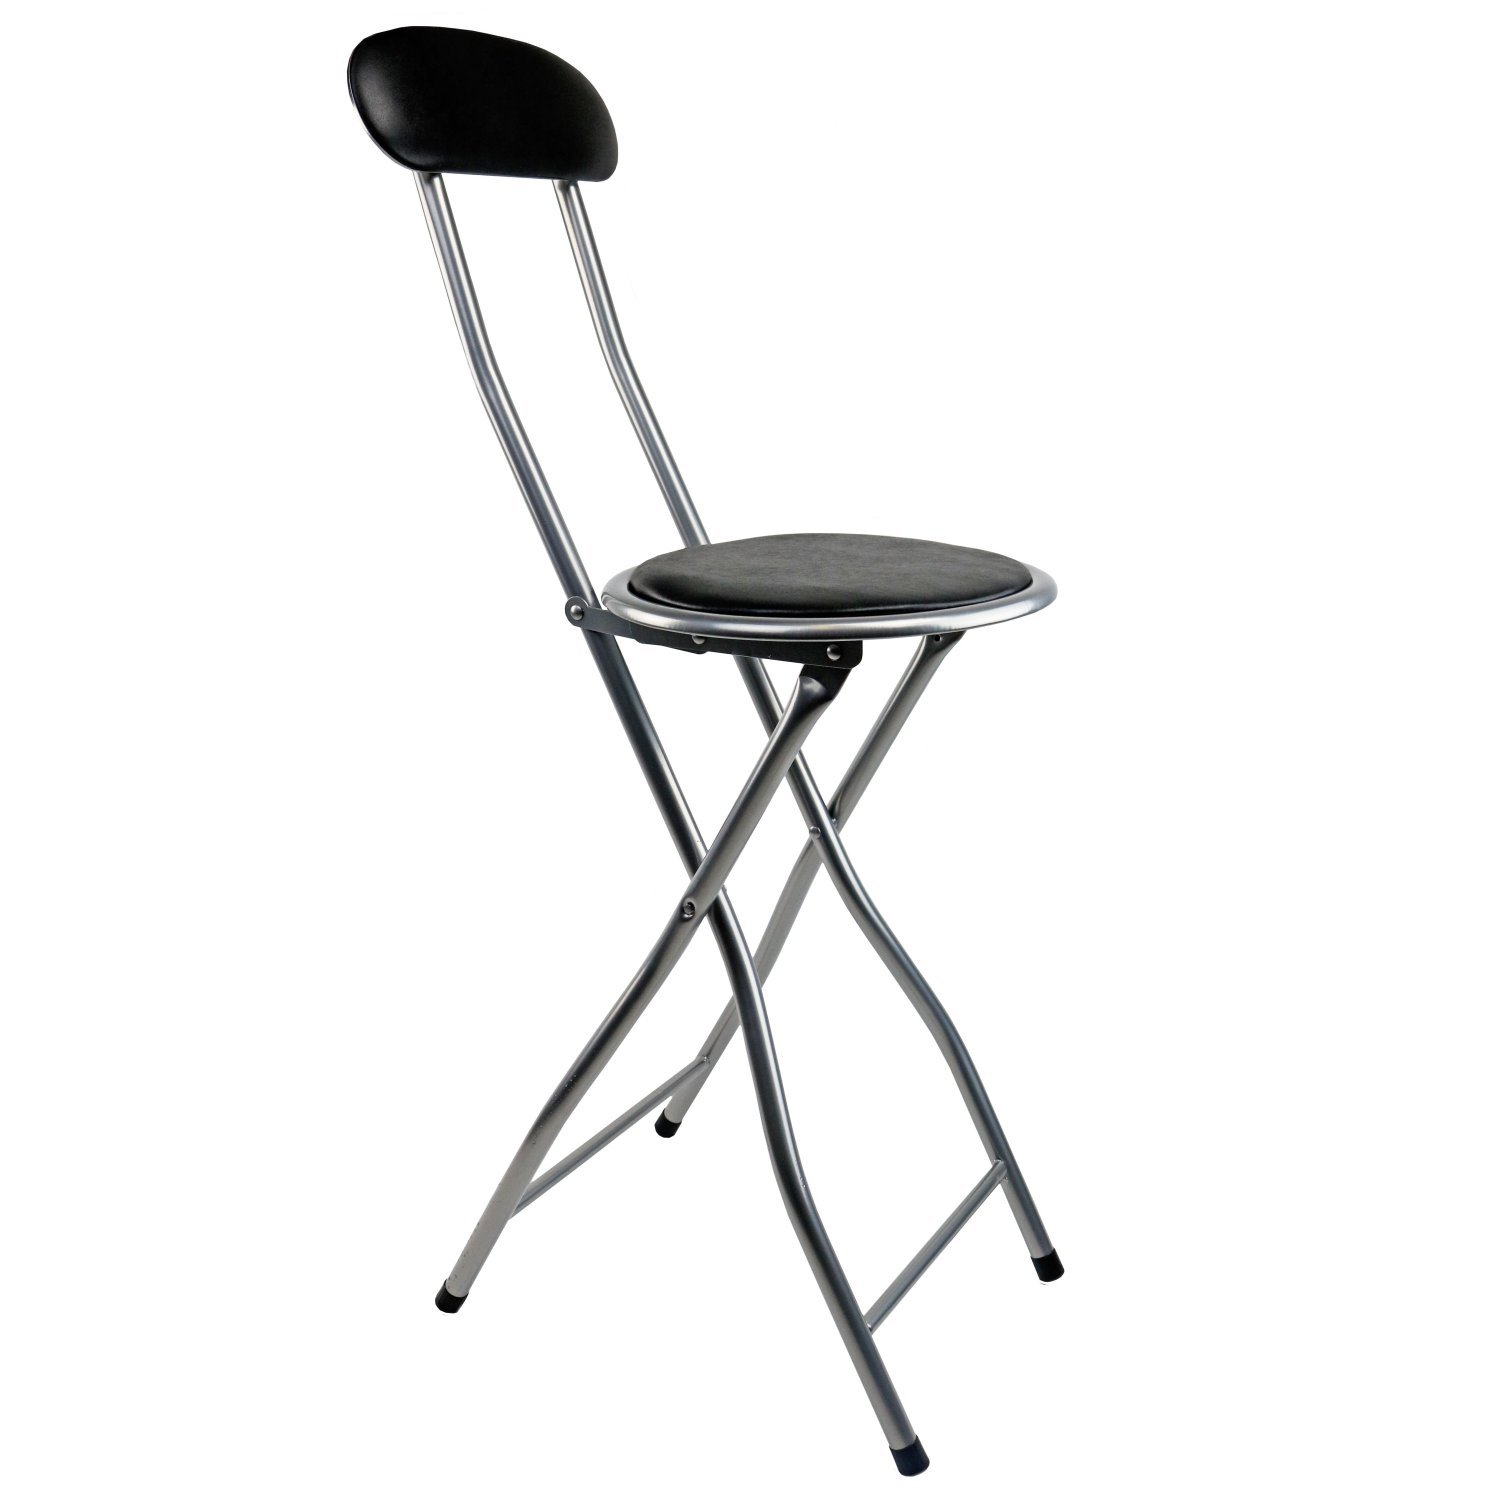 Black Padded Folding High Chair Breakfast Kitchen Bar Stool Seat Oypla Stocking The